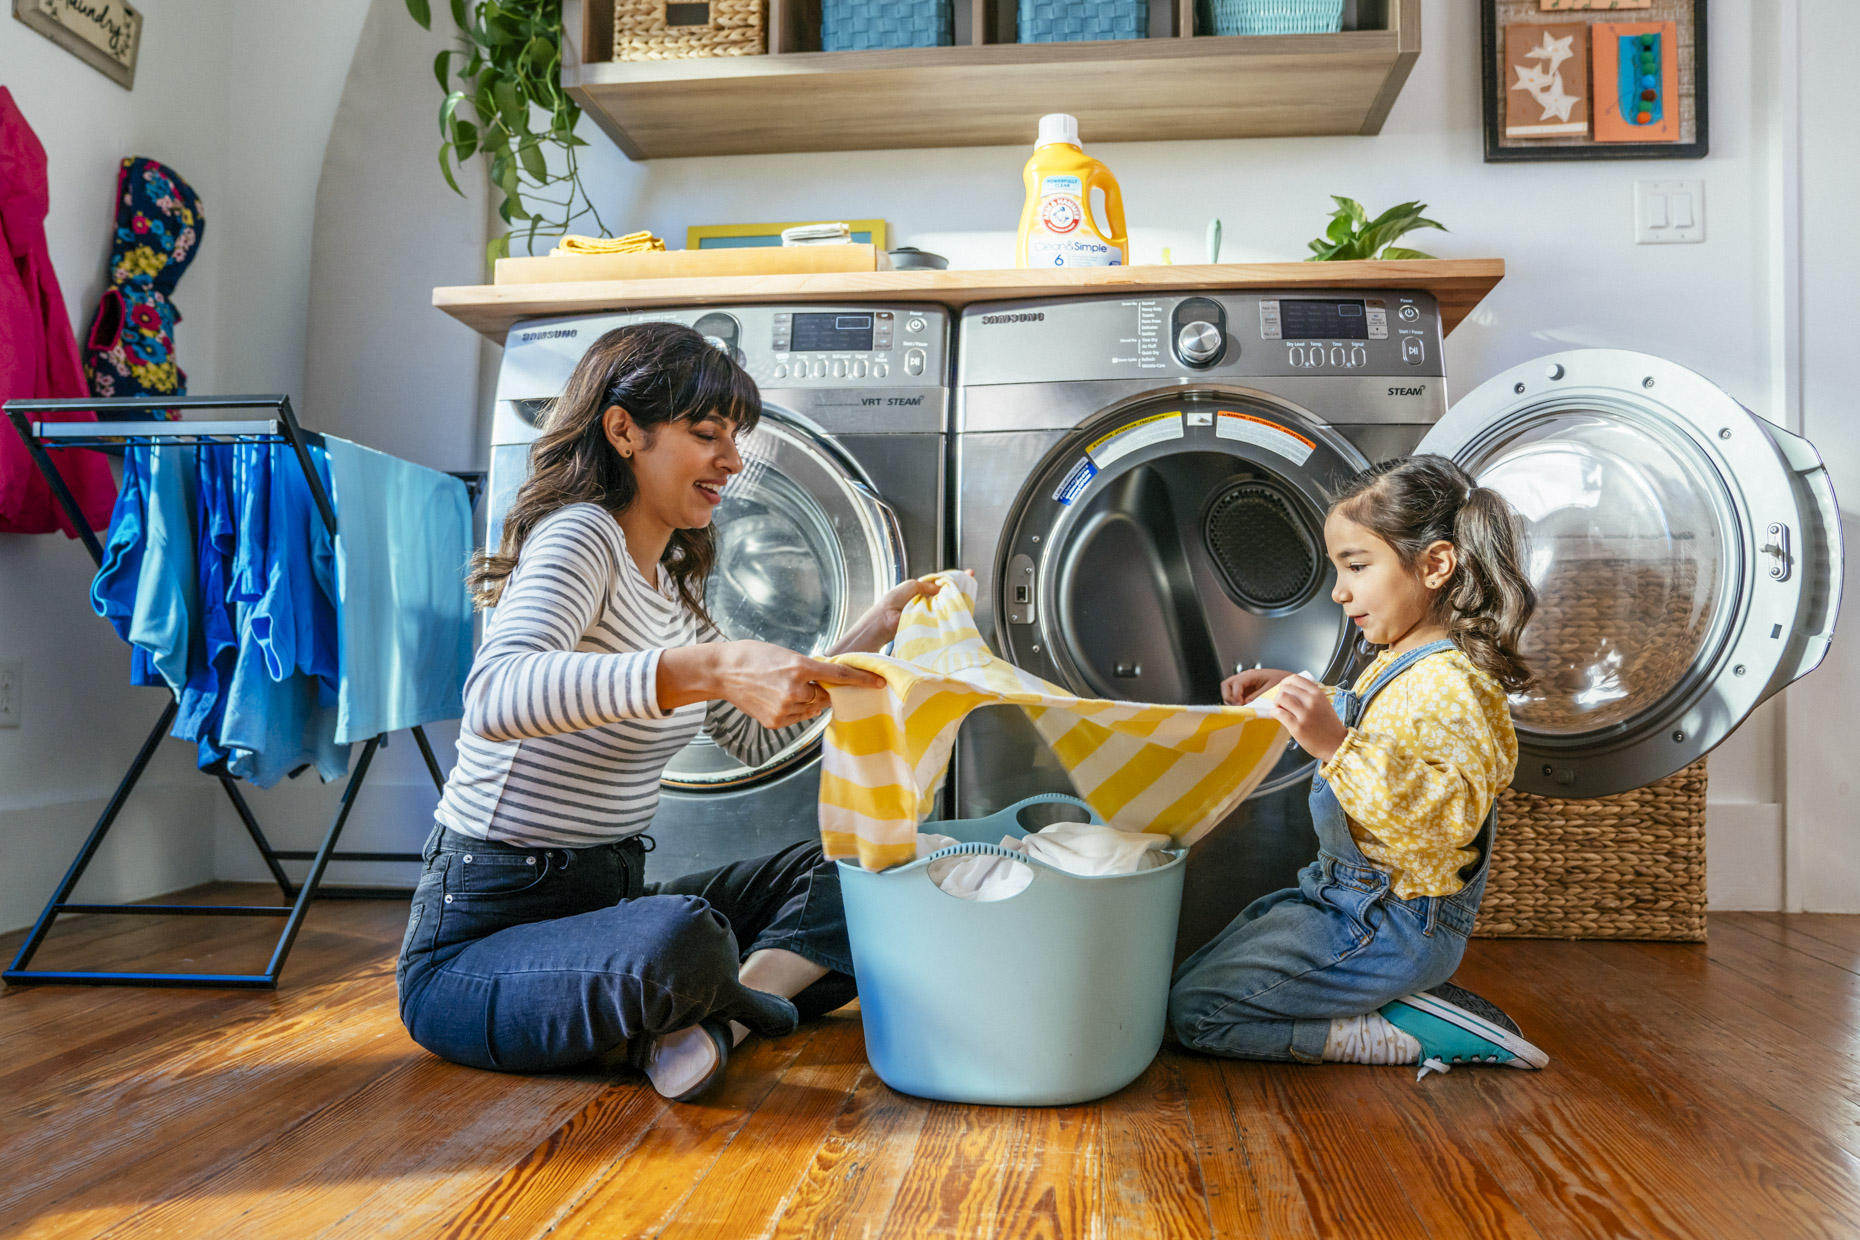 Mom and daughter folding laundry together on floor by dryer